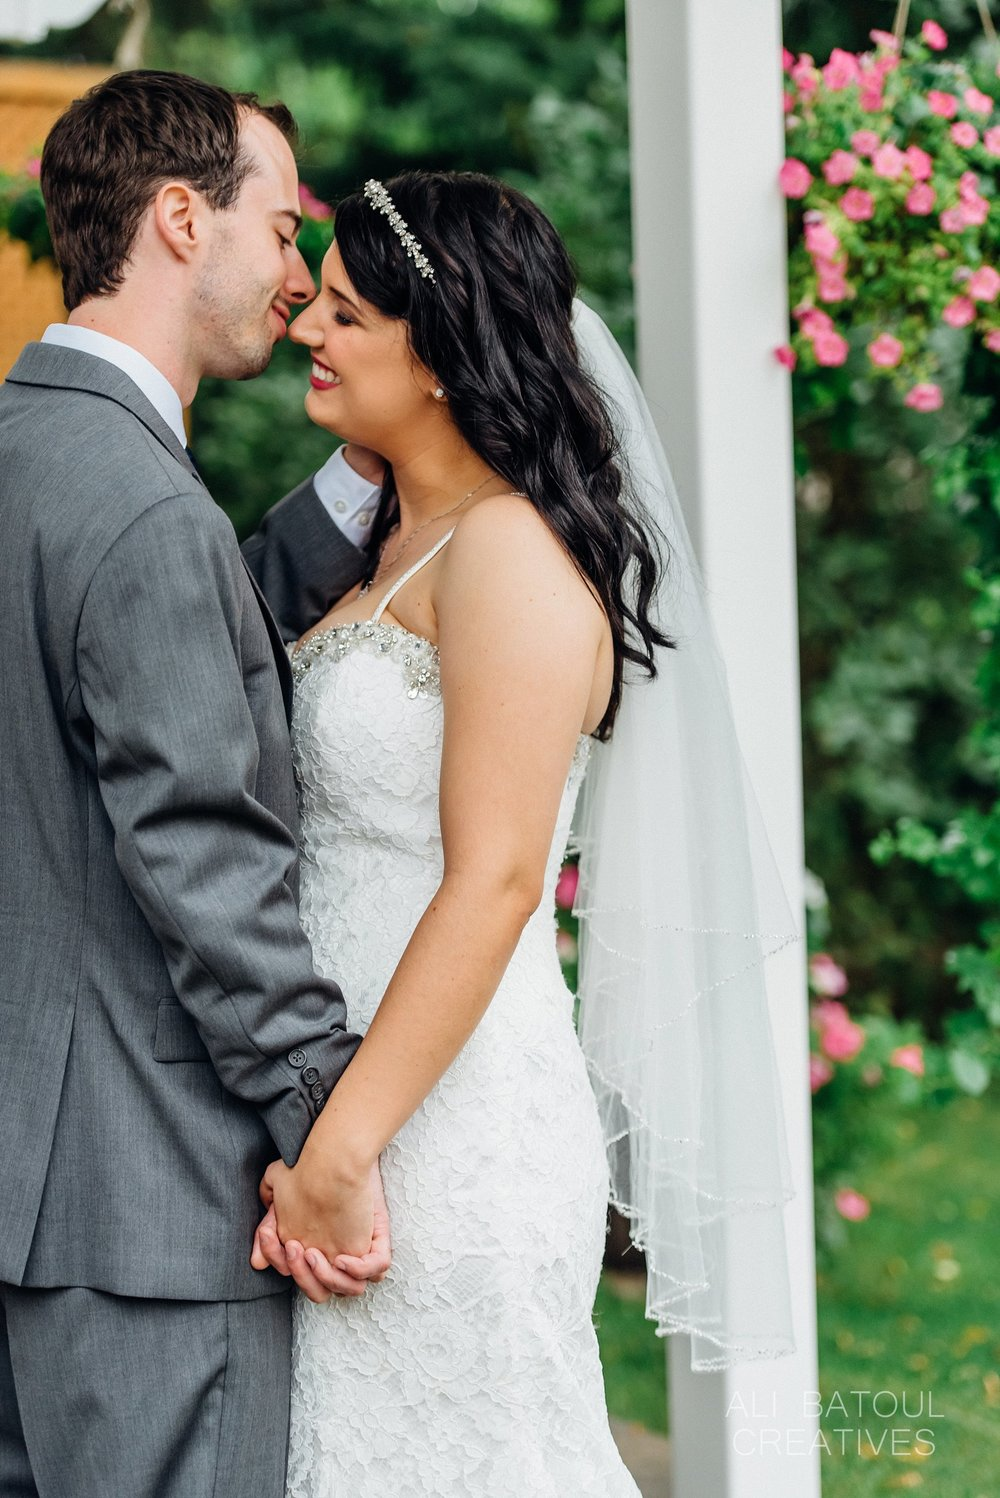 Jocelyn + Steve At The Schoolhouse Wedding - Ali and Batoul Fine Art Wedding Photography_0053.jpg